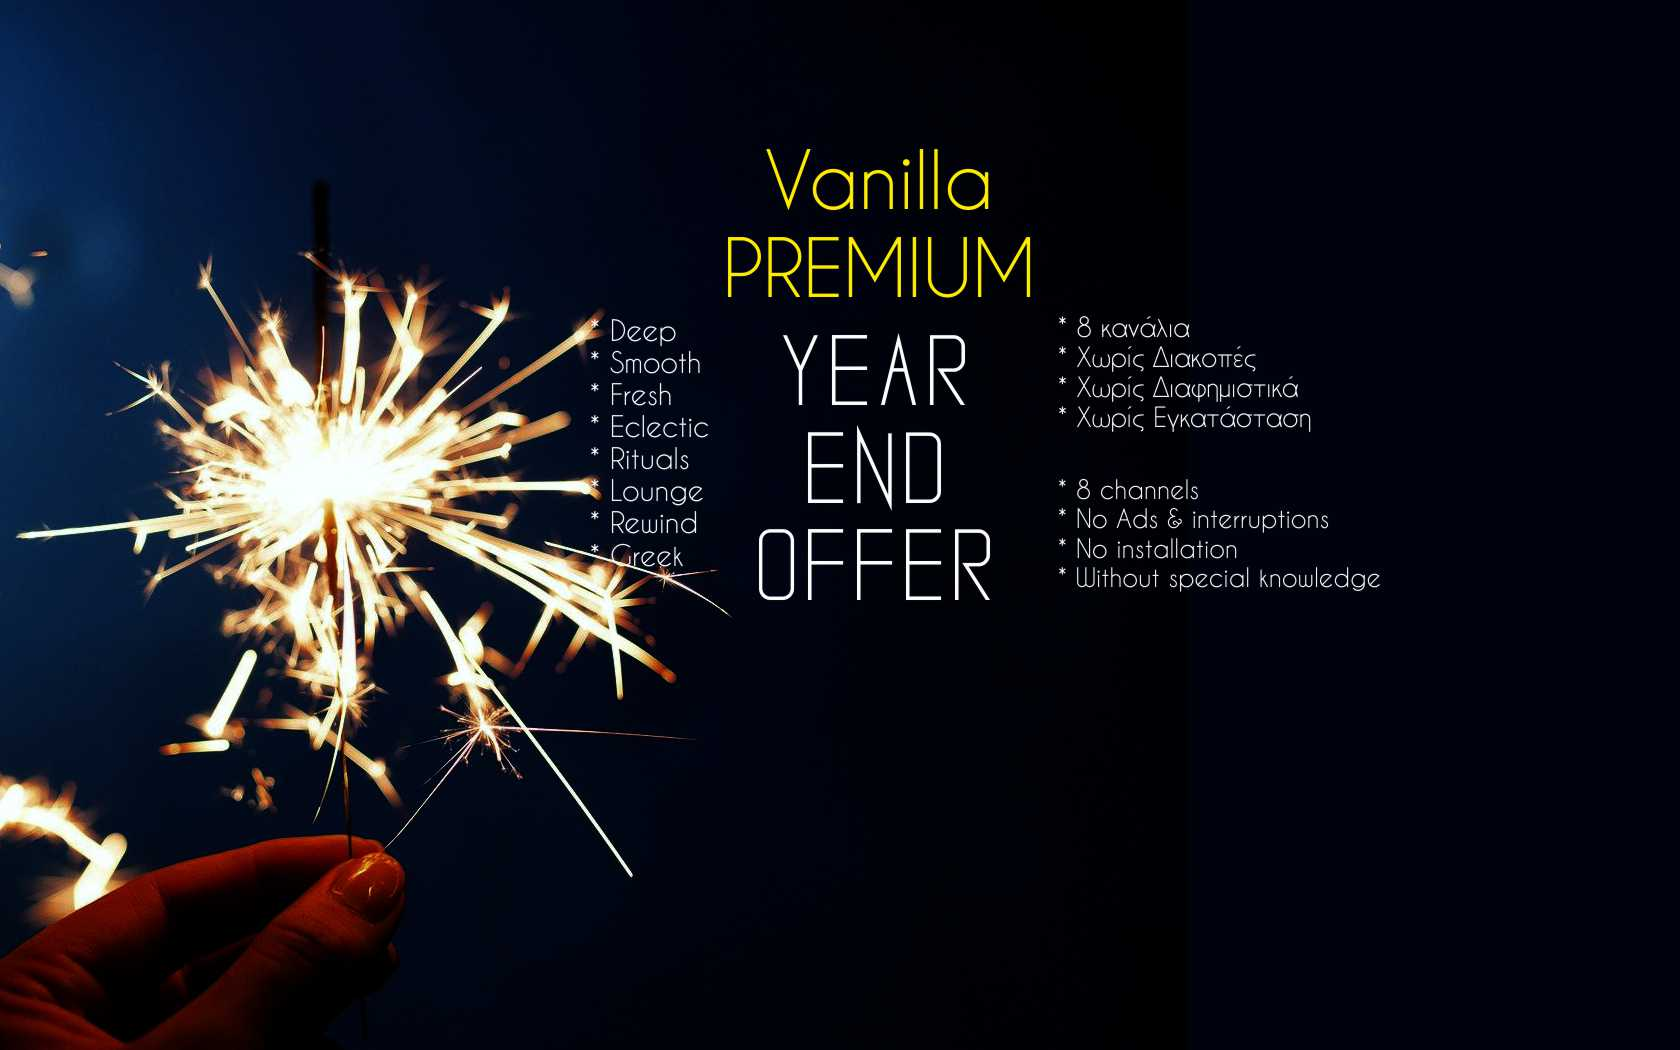 YEAR END OFFER Vanilla Radio Sales - 2020